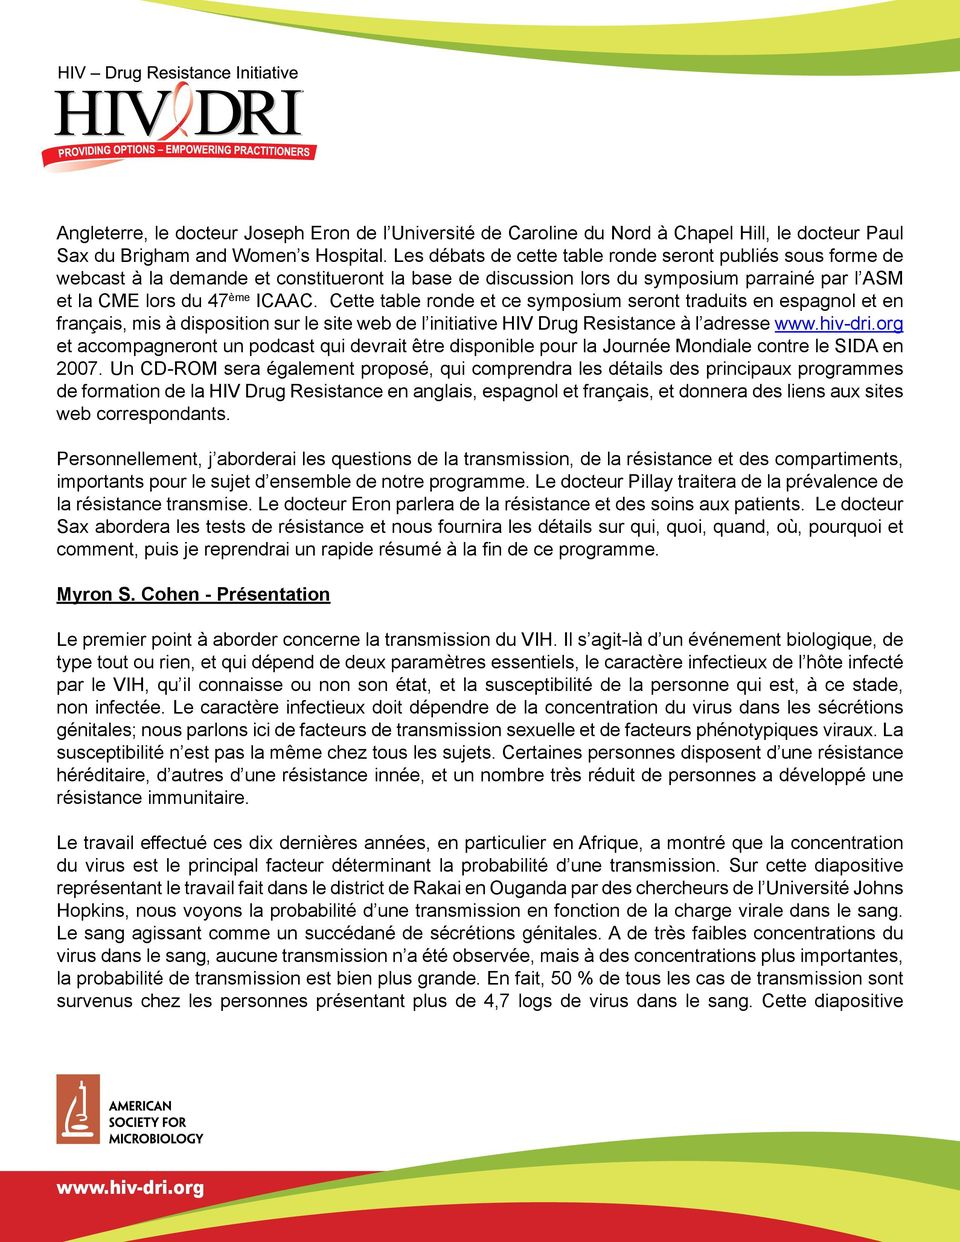 Cette table ronde et ce symposium seront traduits en espagnol et en français, mis à disposition sur le site web de l initiative HIV Drug Resistance à l adresse et accompagneront un podcast qui